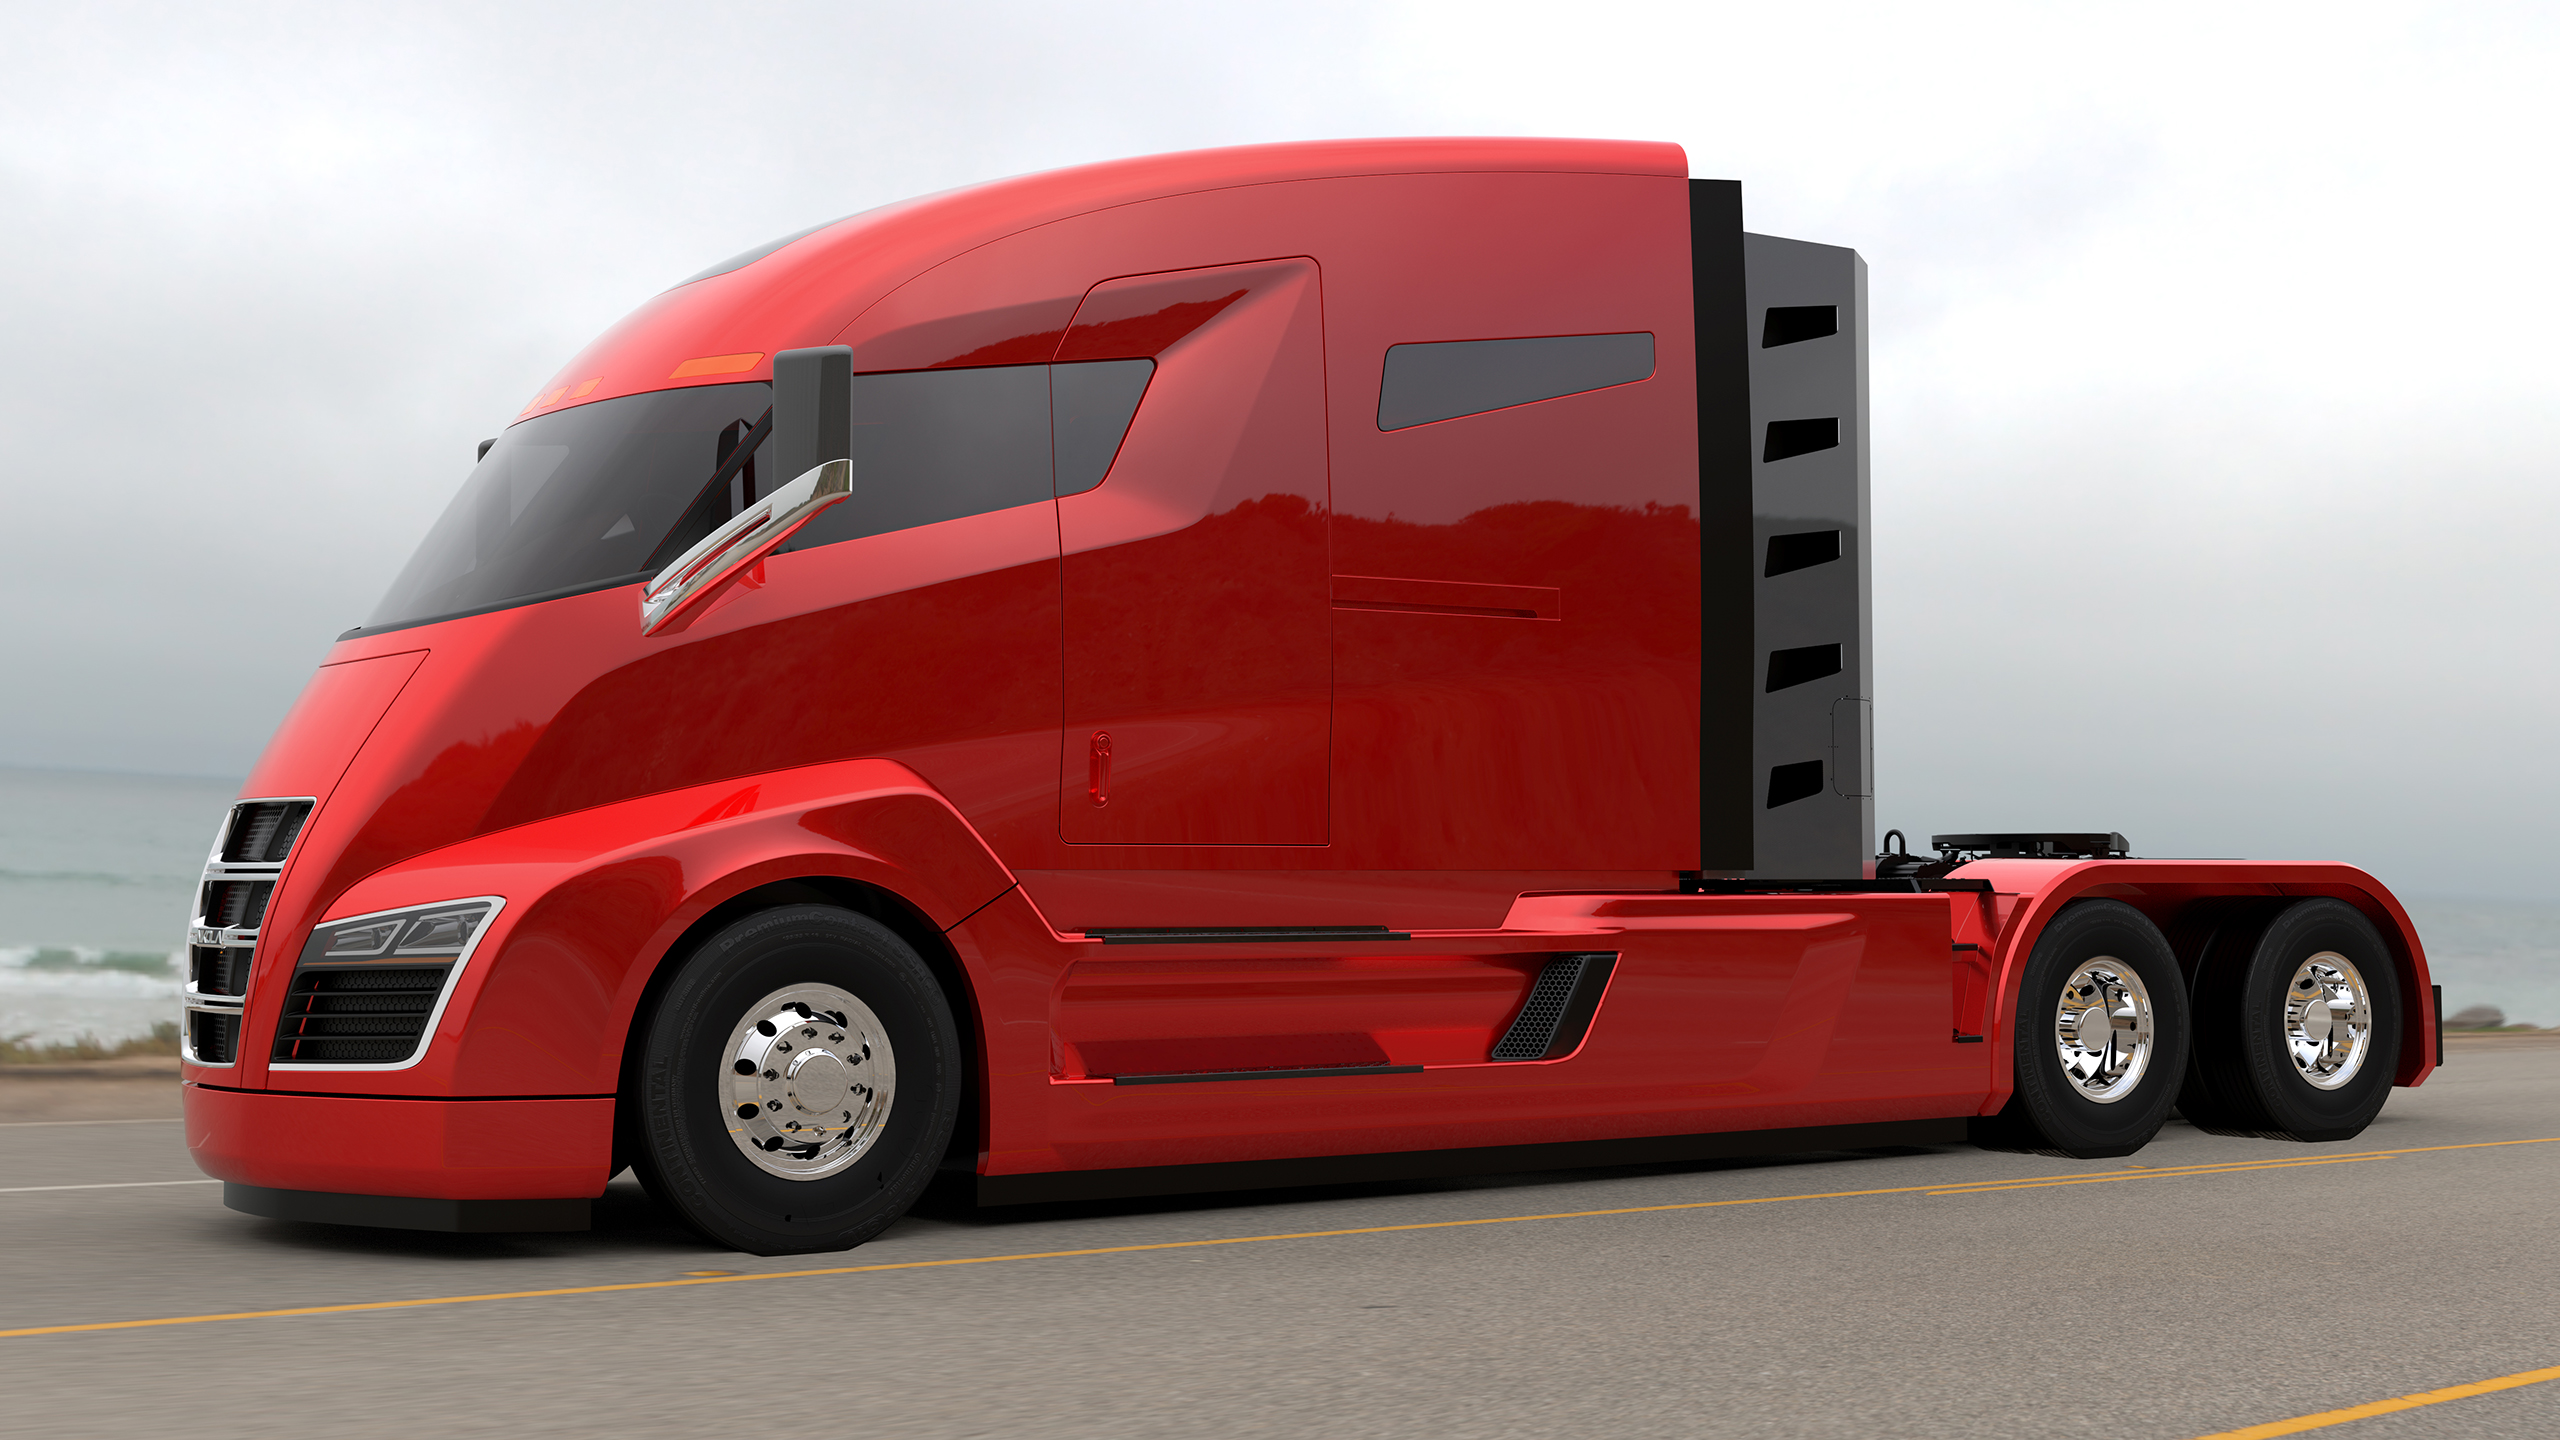 Nikola One electric semi